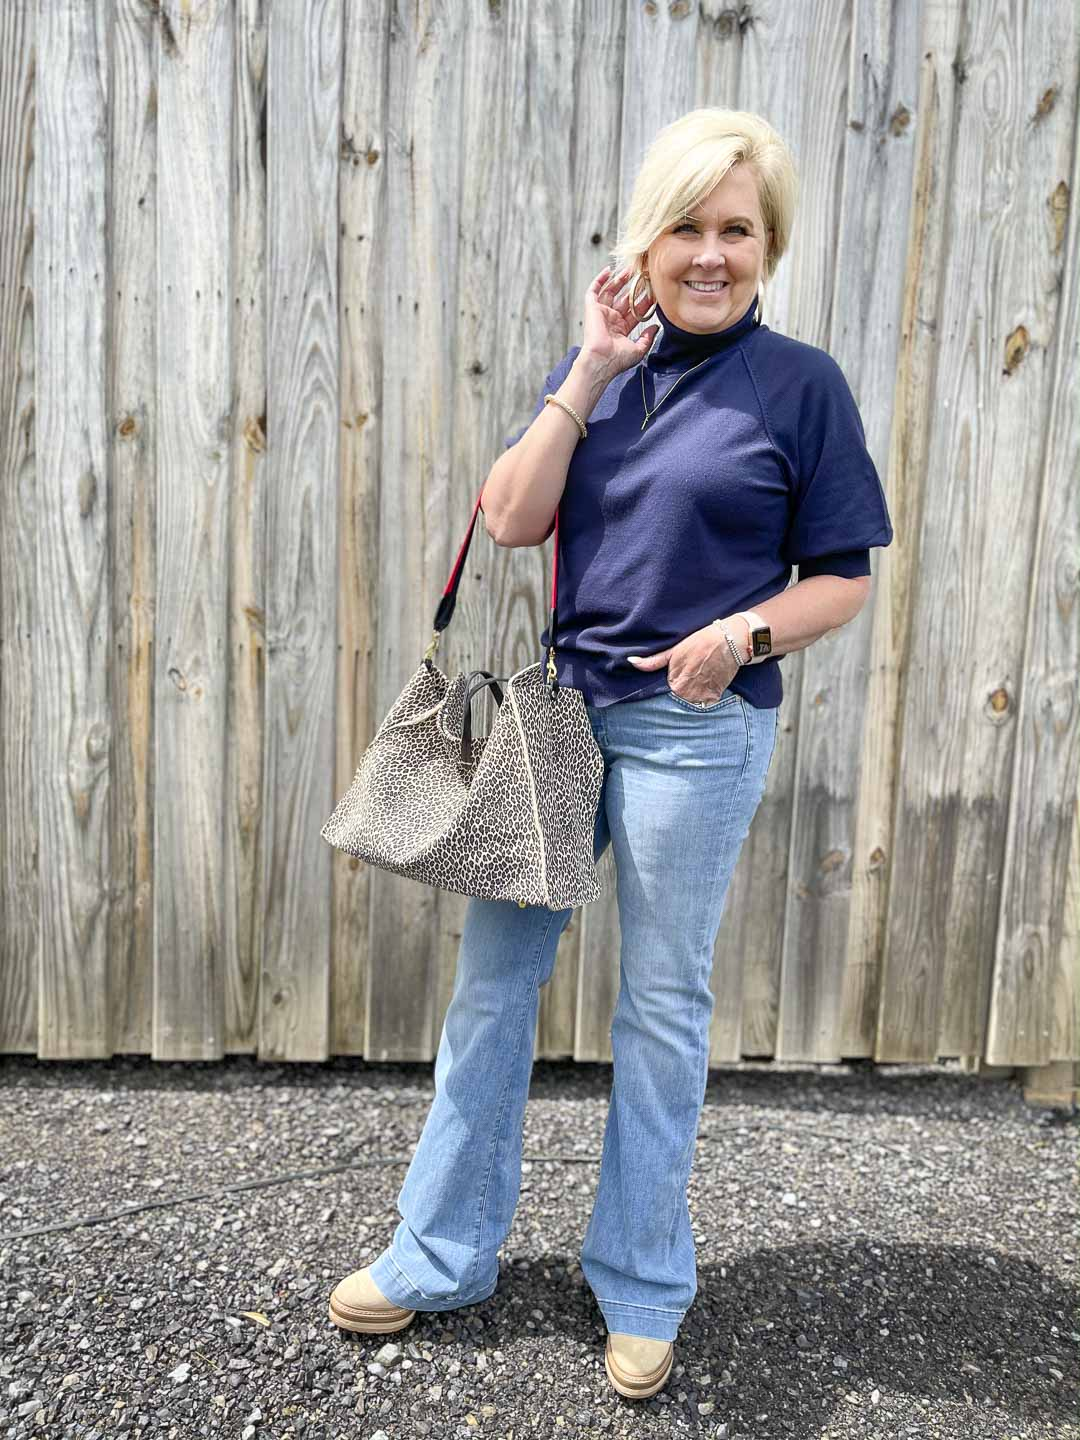 Over 40 Fashion Blogger, Tania Stephens, is wearing a navy turtleneck sweater, a pair of flare jeans, and carrying a large tote bag